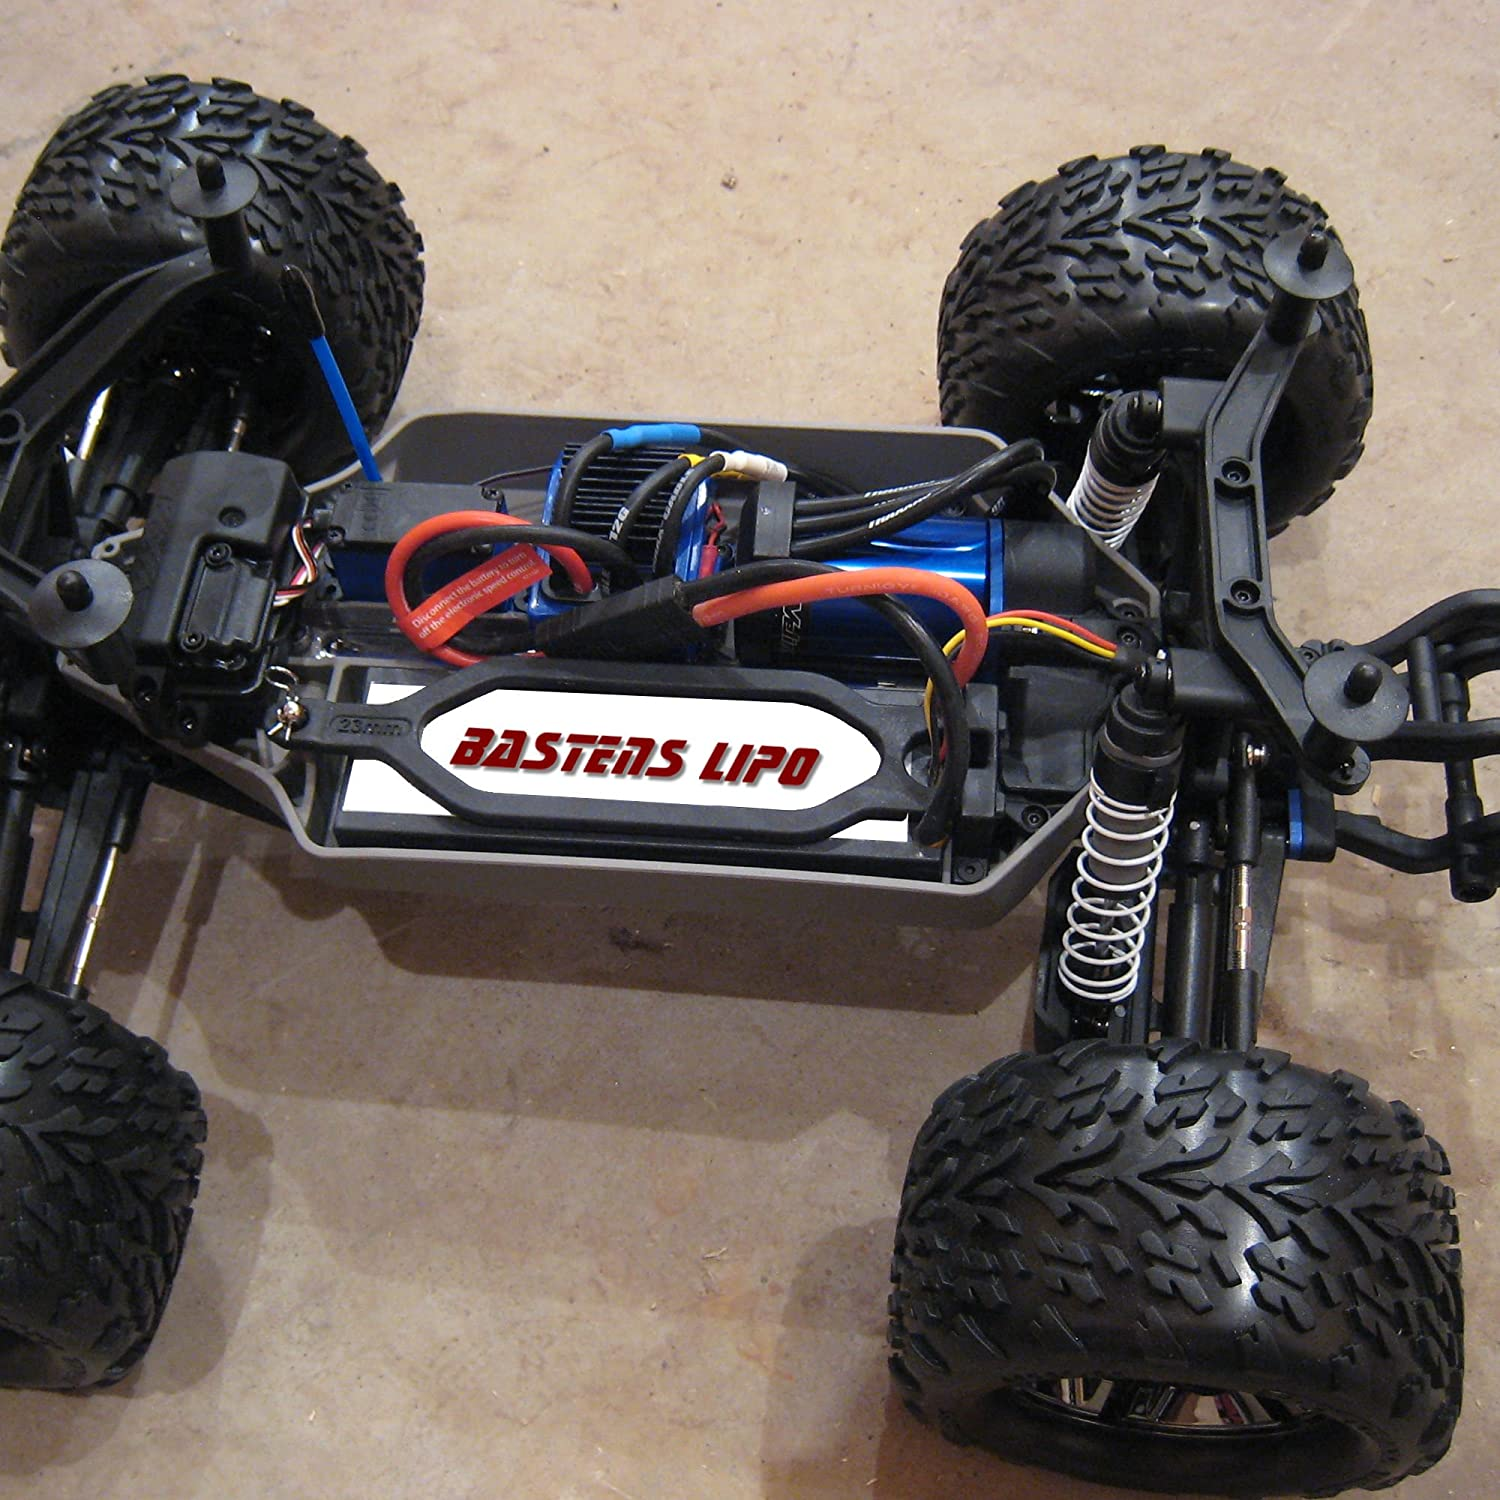 Amazon Bastens LiPo 7 4V 5000mAH upgrade battery for the Traxxas 2x4 4x4 VXL Raptor Stampede Rustler Bandit Slash XO 1 1 10 E Revo Brushless